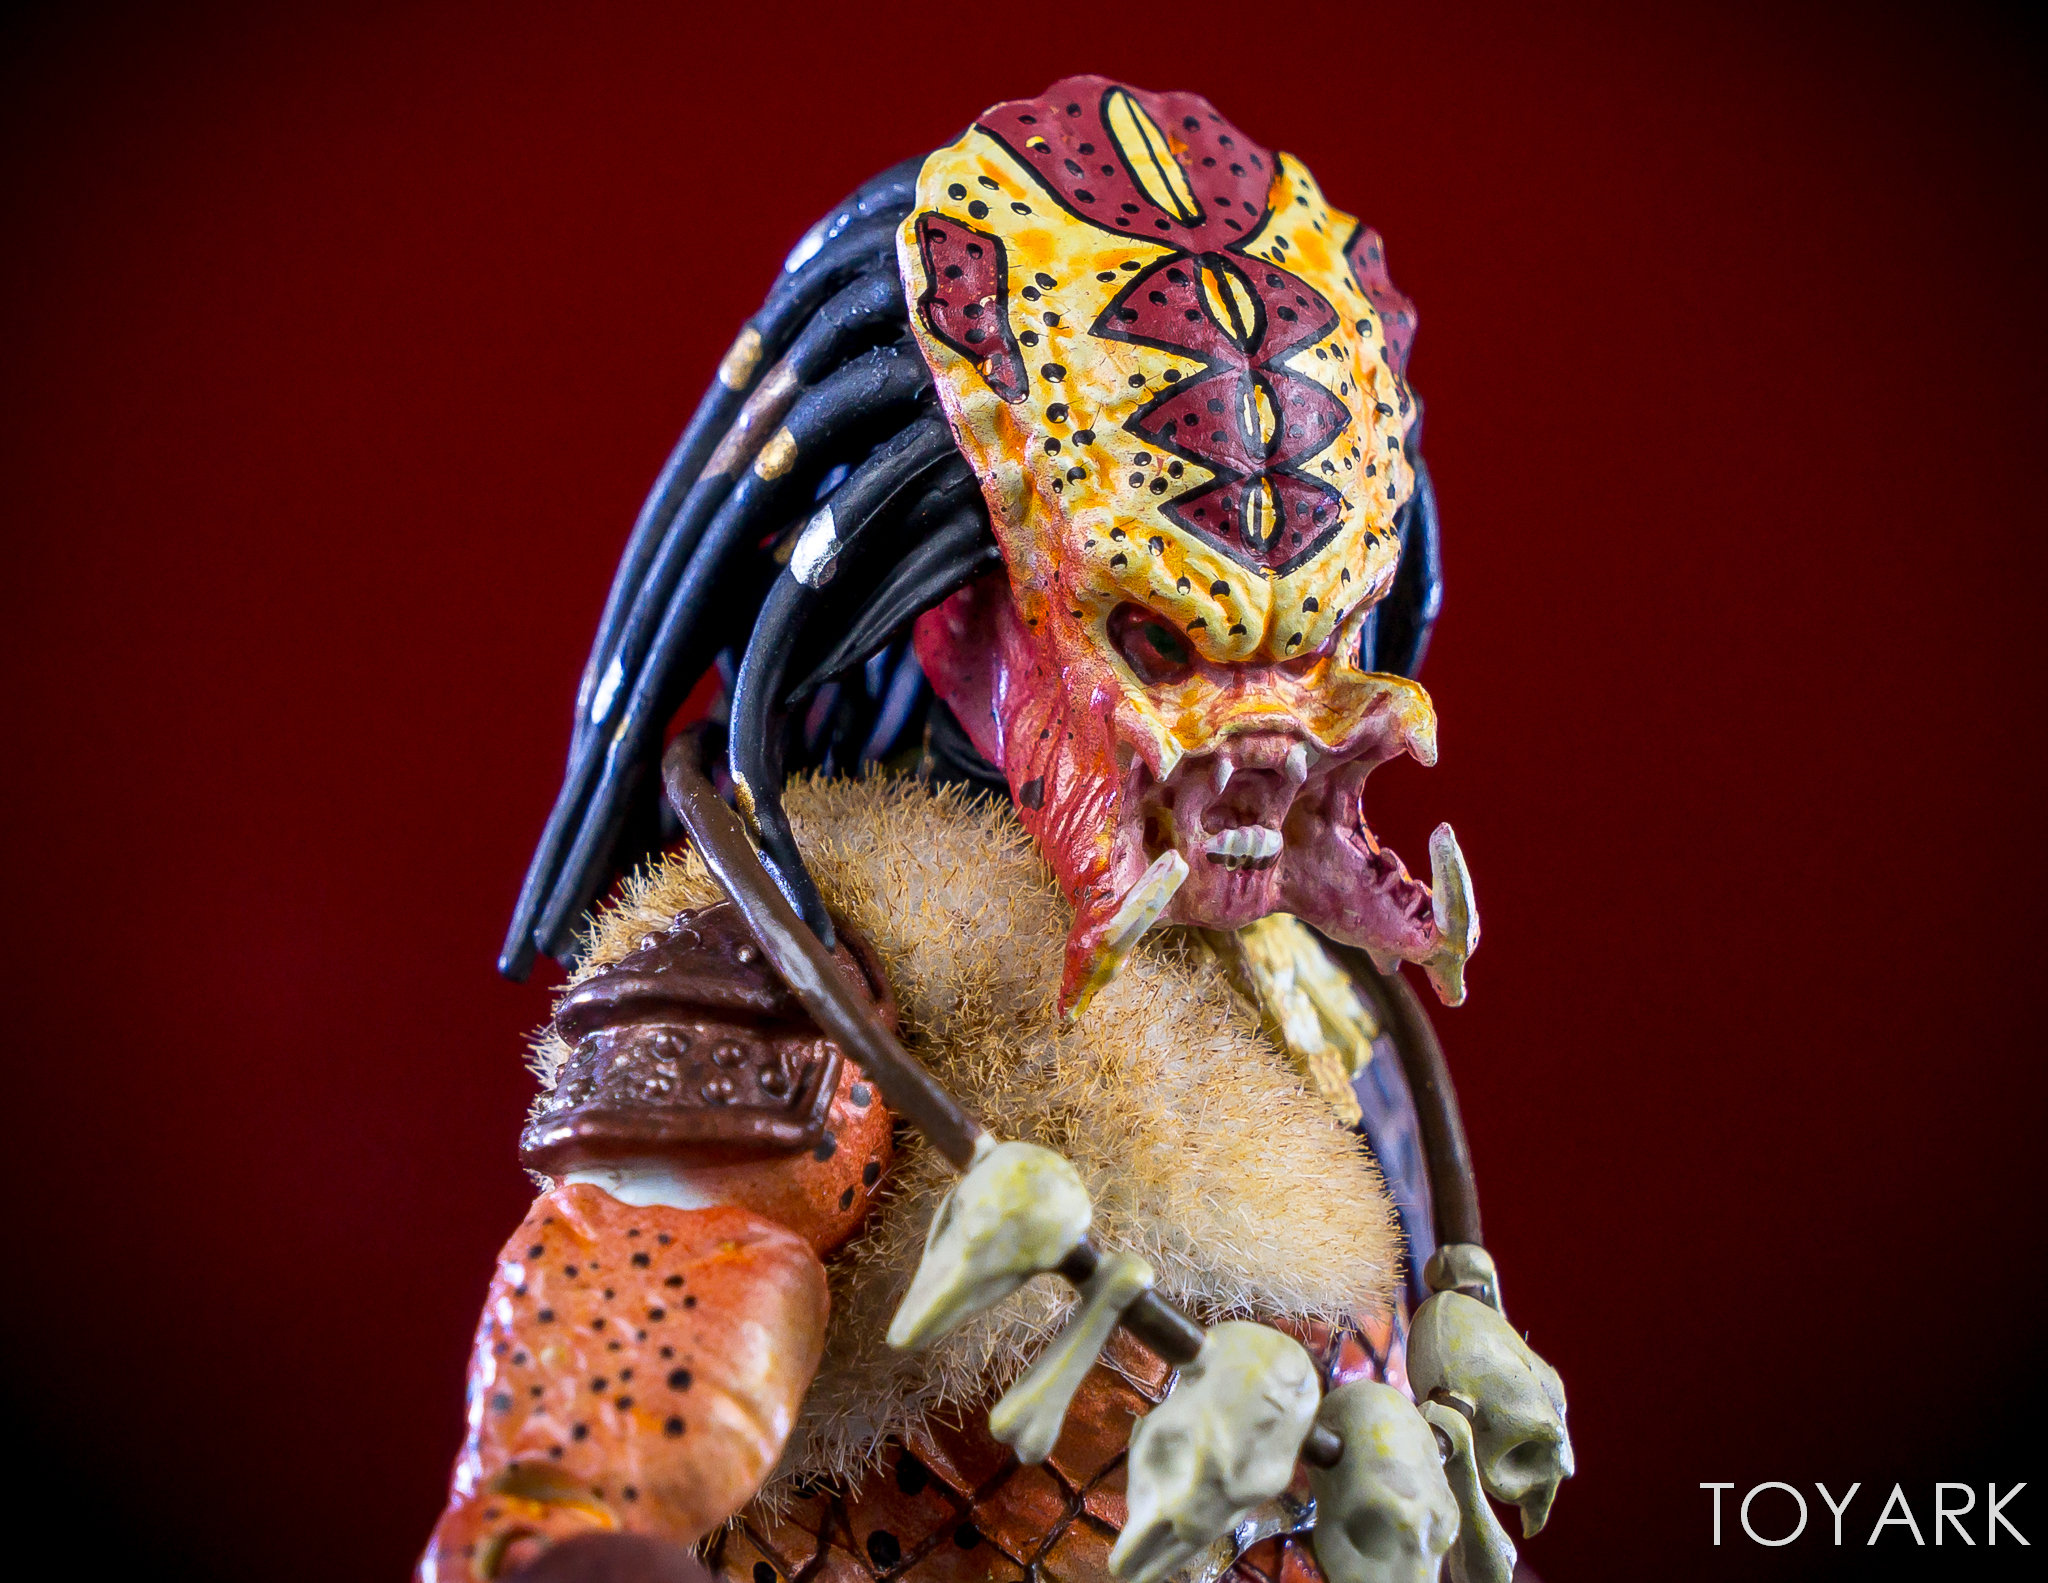 http://news.toyark.com/wp-content/uploads/sites/4/2018/03/Hiya-Predator-2-Figures-012.jpg